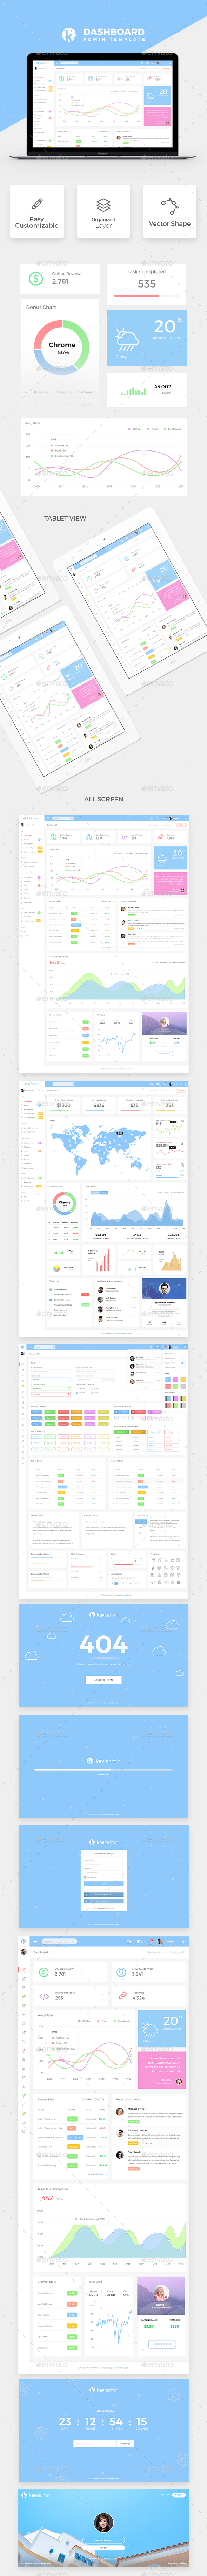 Material Dashboard (User Interfaces)